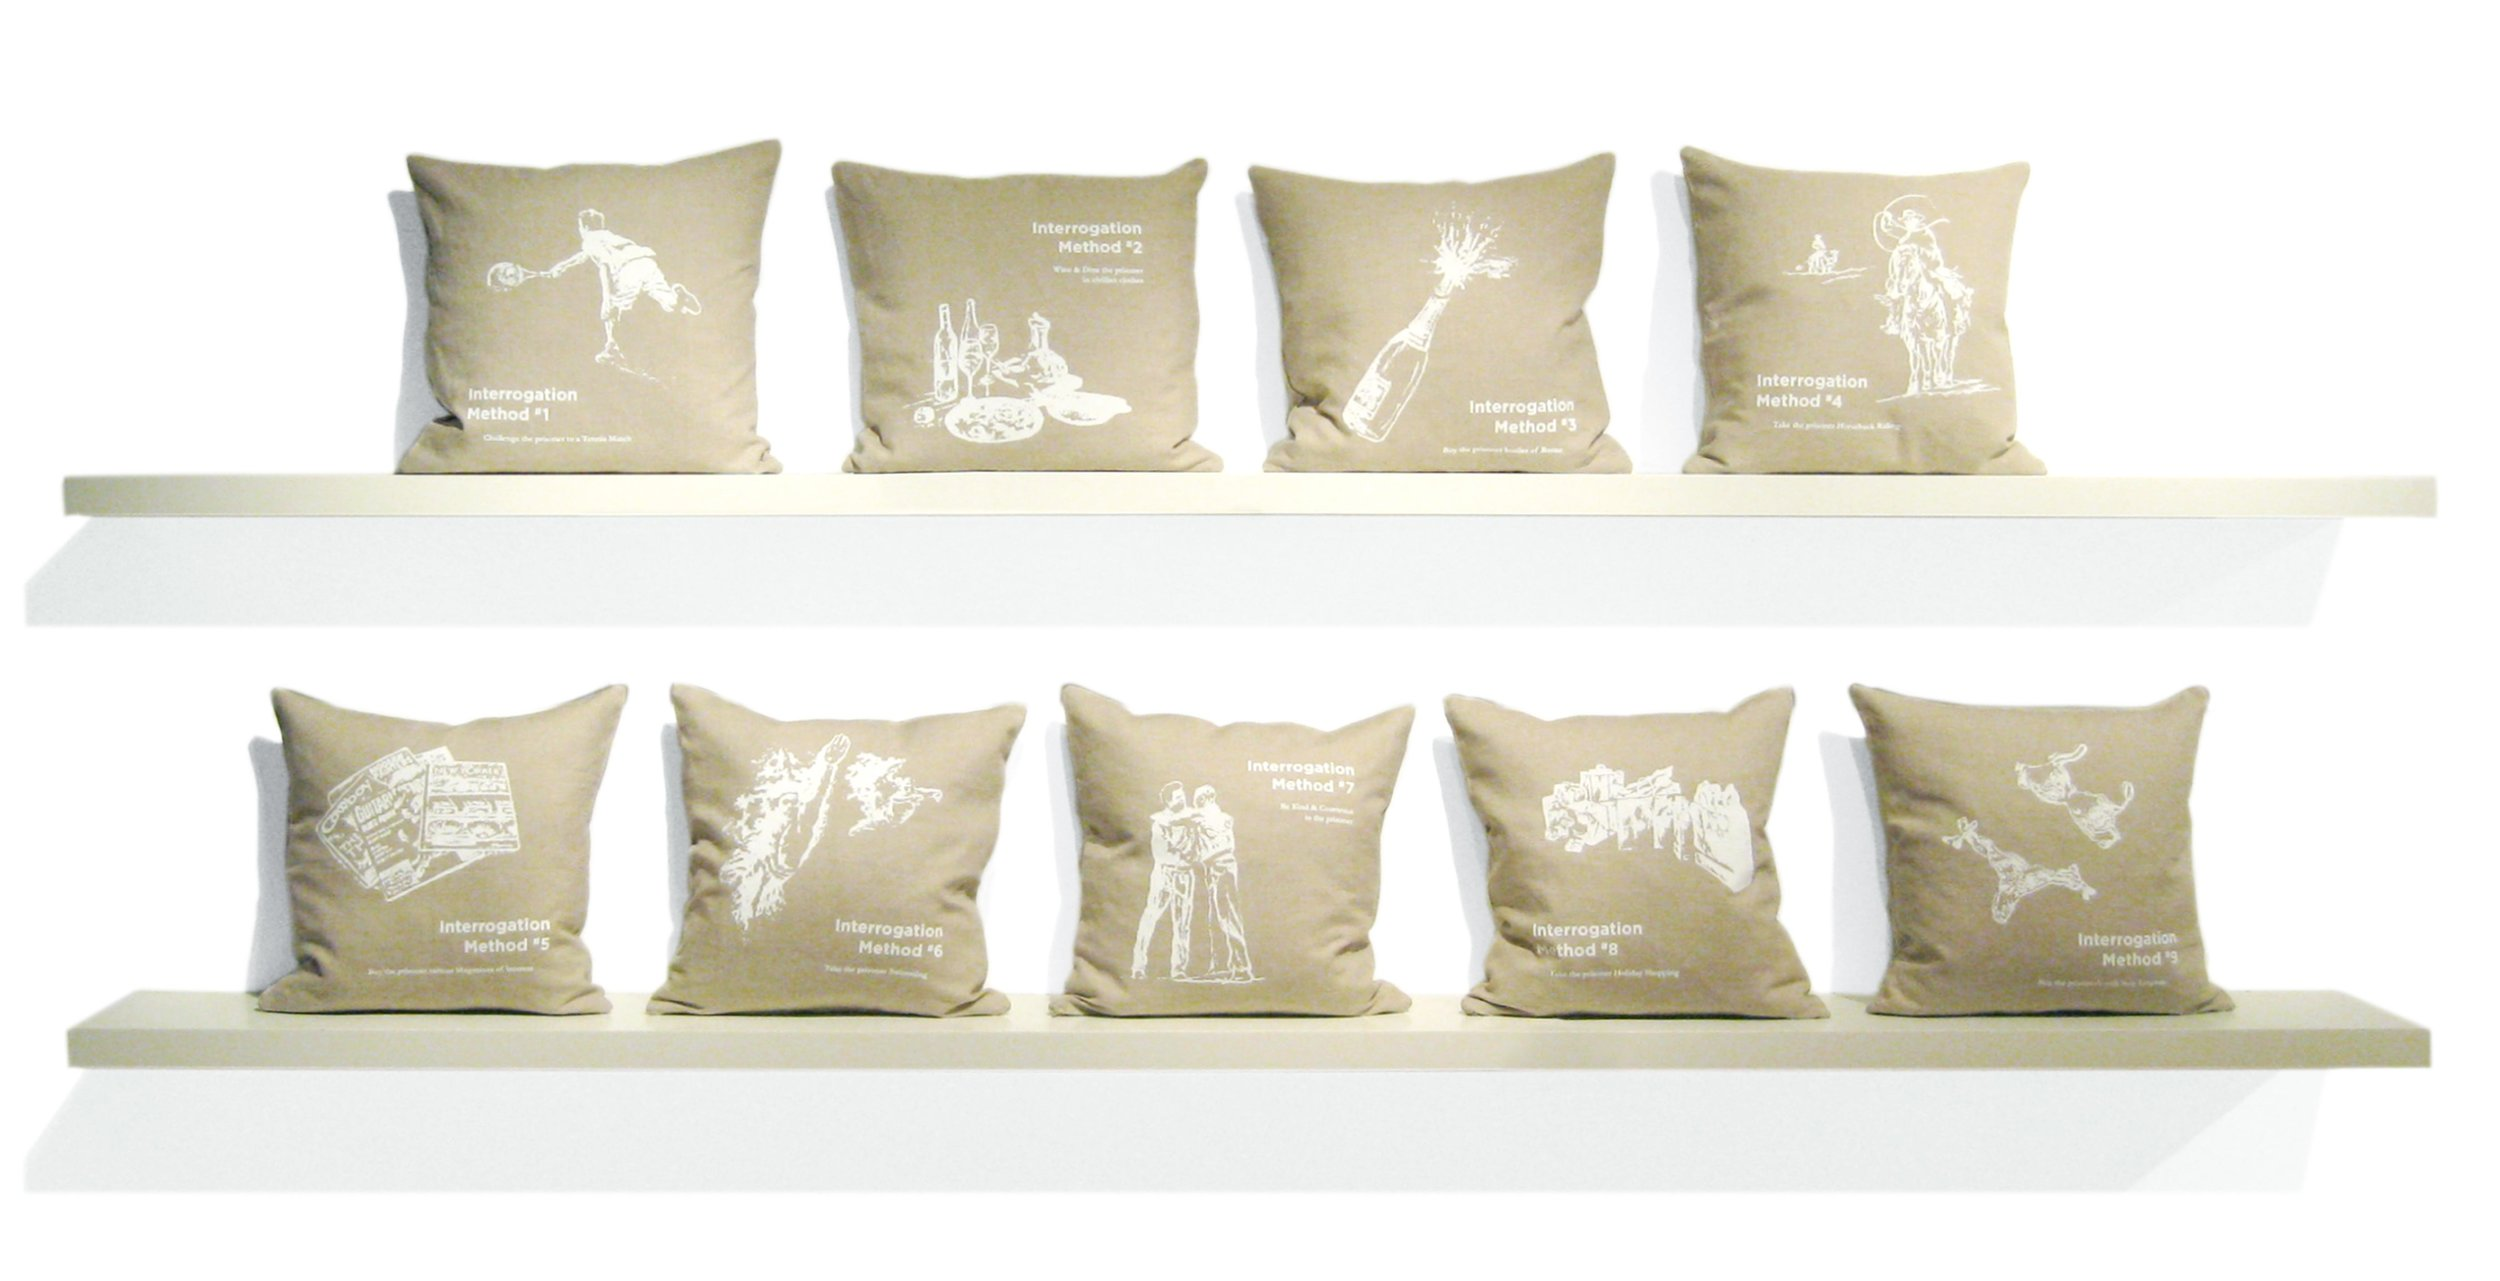 Interrogation Pillow Series   Limited Edition Silkscreen Throw Pillows 18in x 18in 5in deep